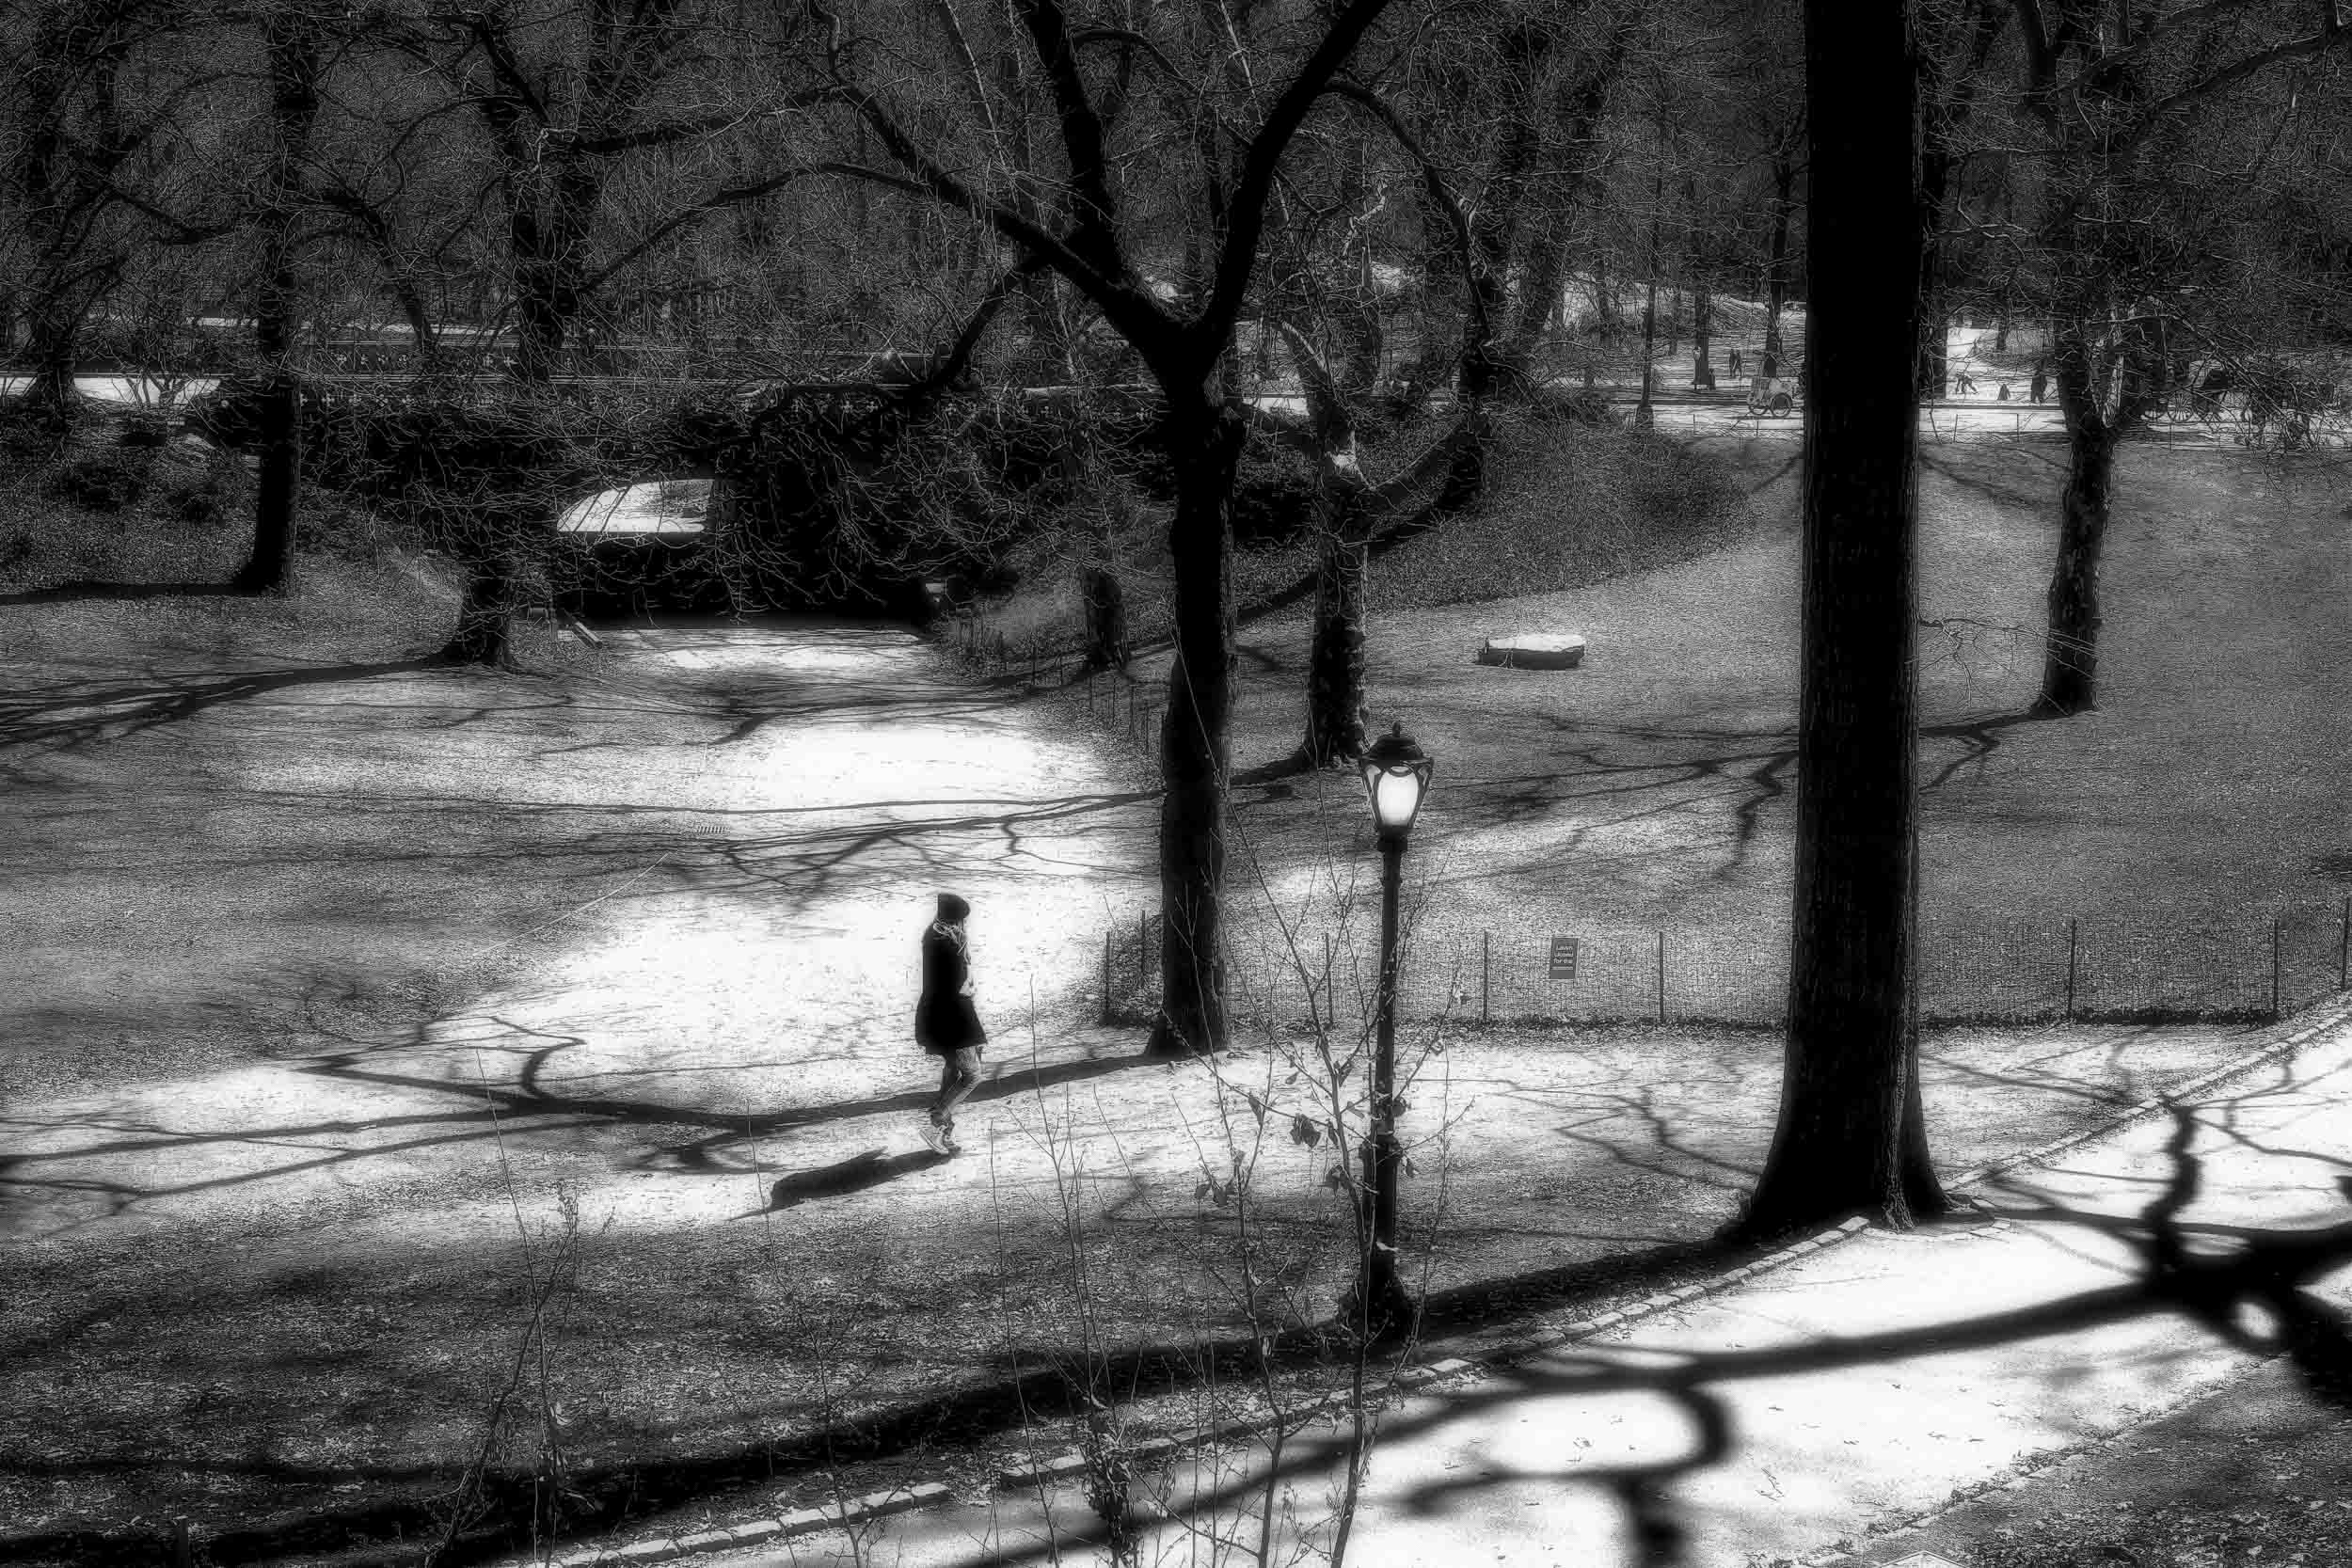 Strolling on a Shaded Path, Central Park, NYC